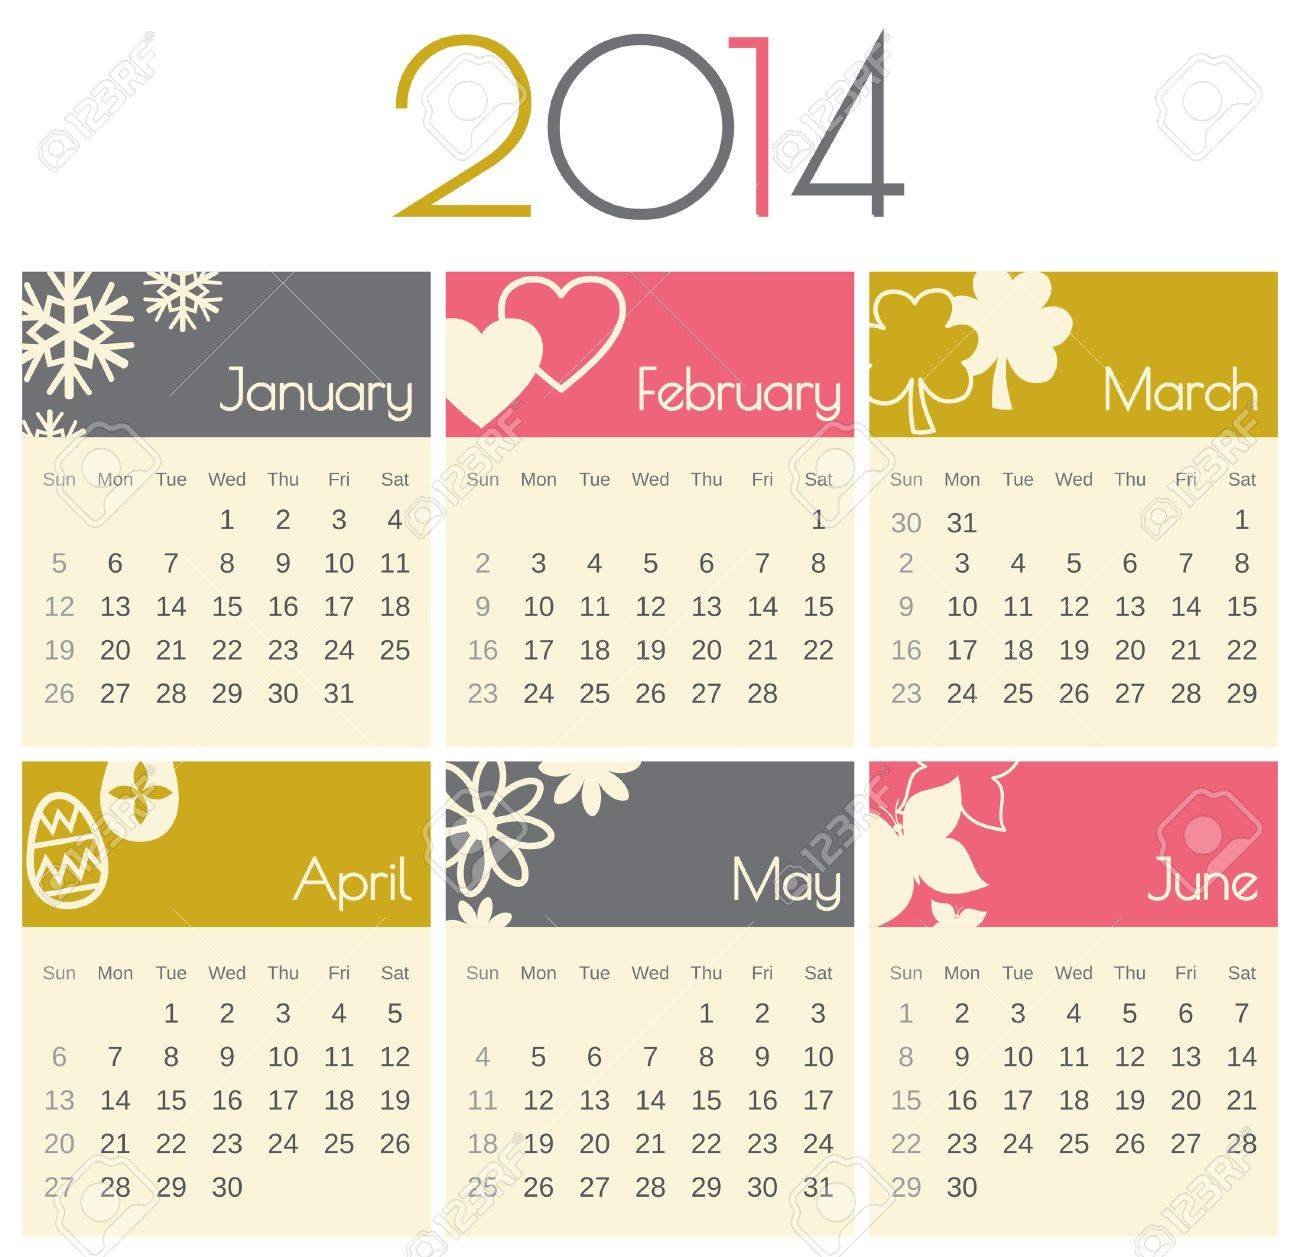 Minimalist design for a 2014 calendar (January to June). Stock Vector - 21086697